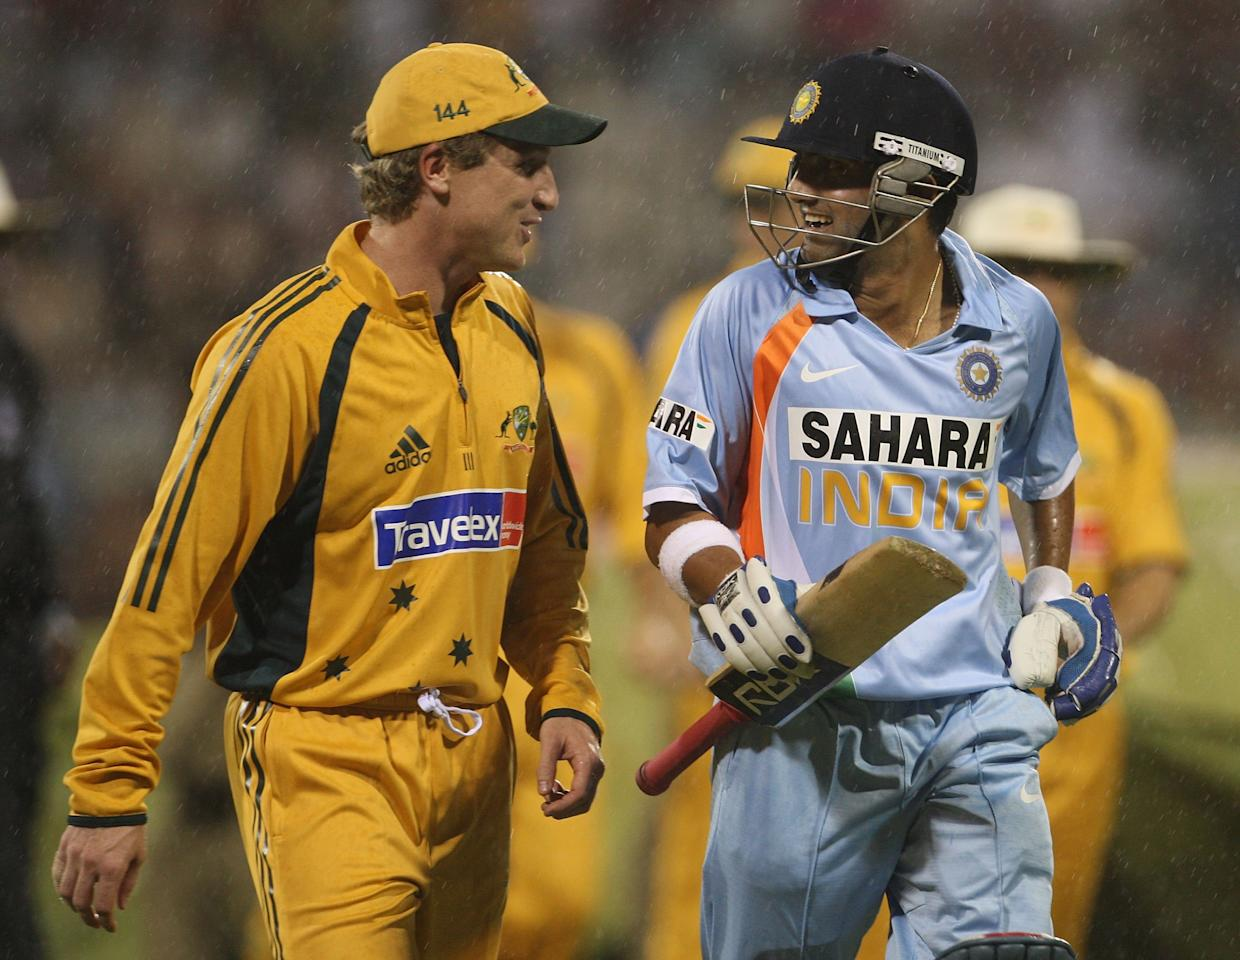 BANGALORE, INDIA - SEPTEMBER 29:  Brad Haddin of Australia and Gautam Gambhir of India share a laugh as they leave the field as rain halts play during the first One Day International between India and Australia at M. Chinnaswamy Stadium on September 29, 2007 in Bangalore, India.  (Photo by Hamish Blair/Getty Images)